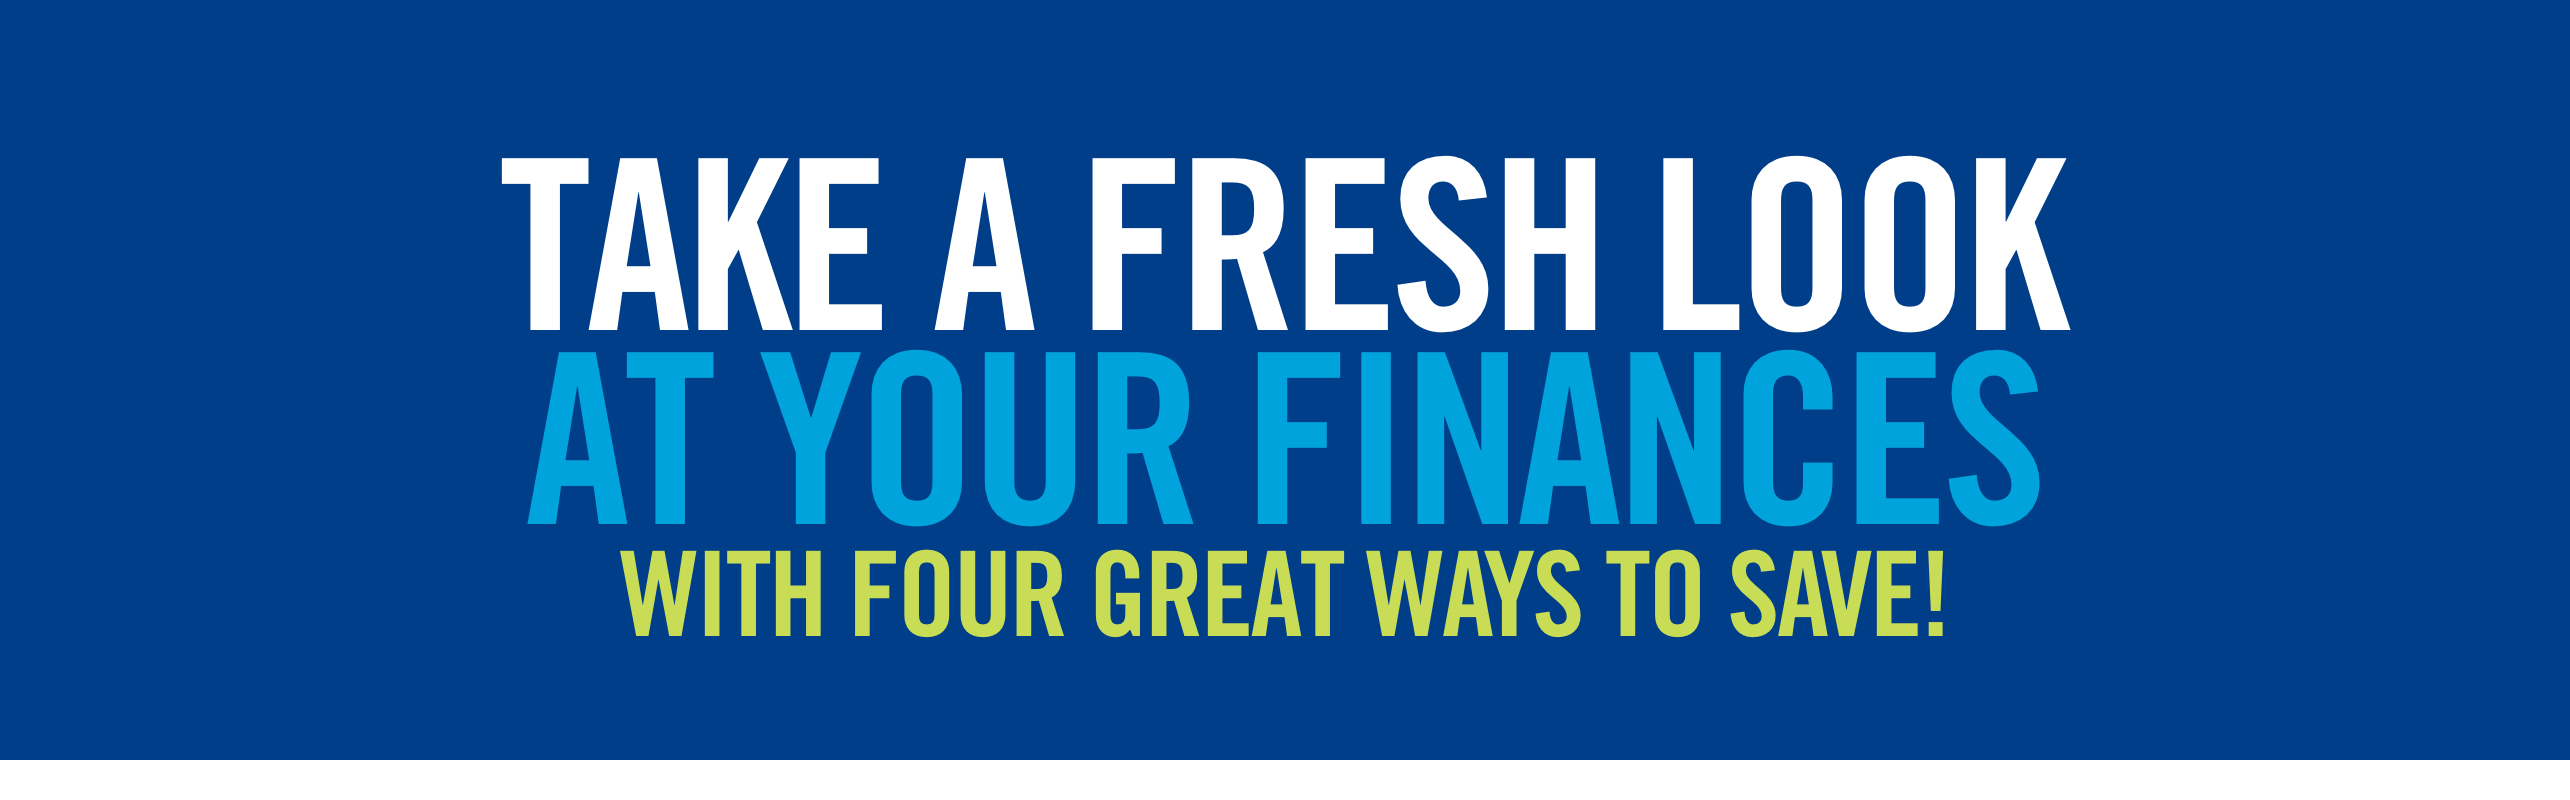 Take A Fresh Look At Your Finances With Four Great Ways To Save!